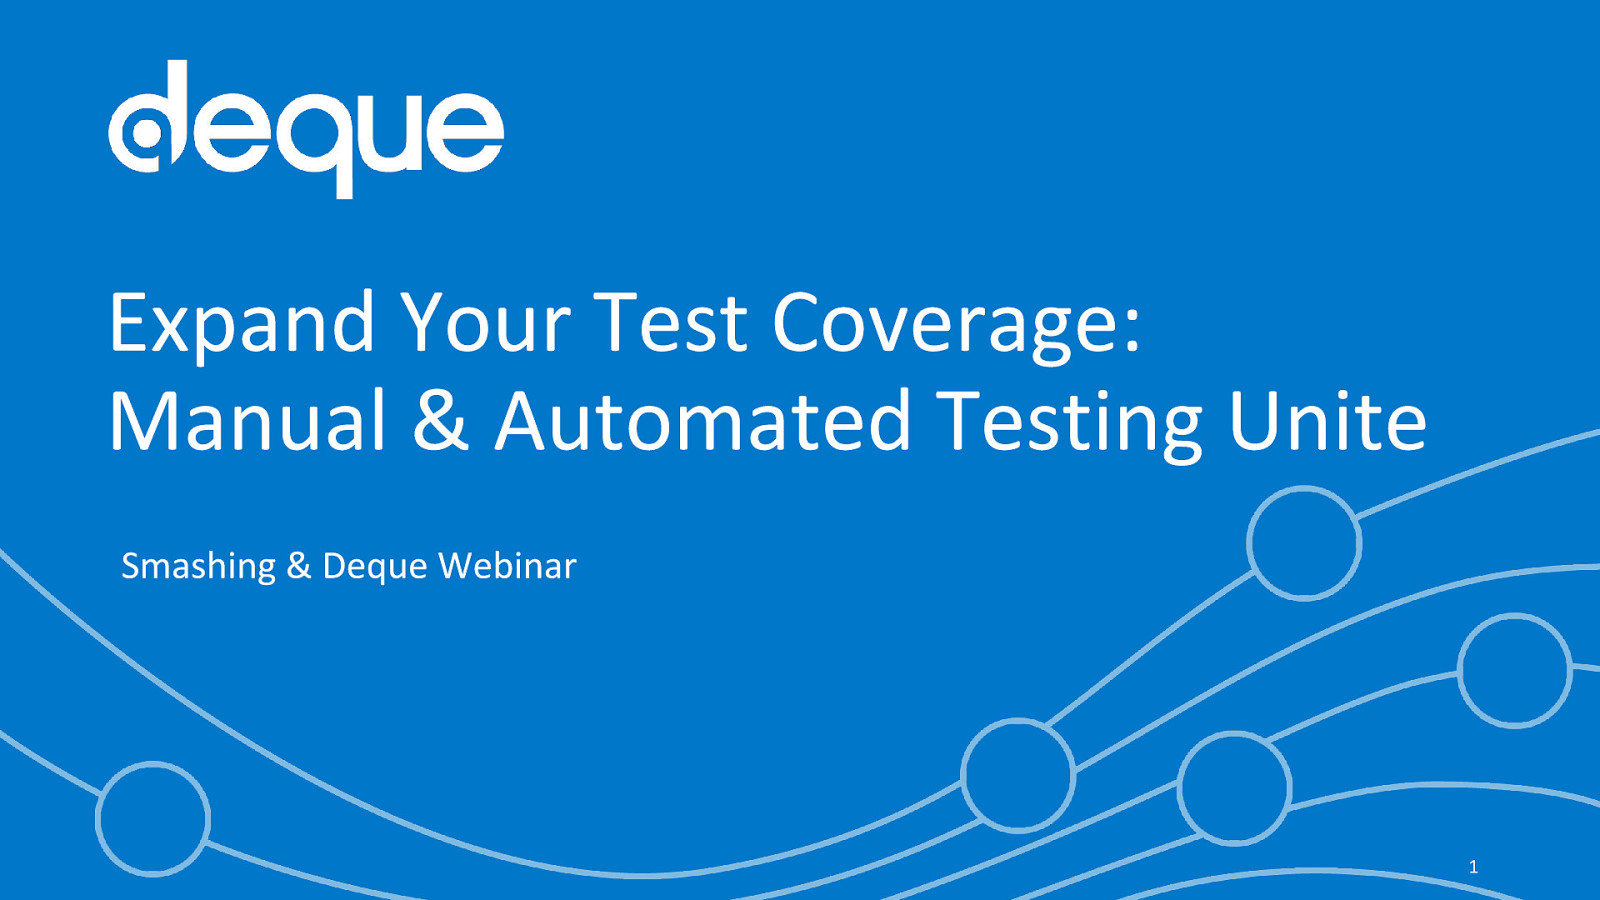 Expand Your Test Coverage:  Manual & Automated Testing Unite